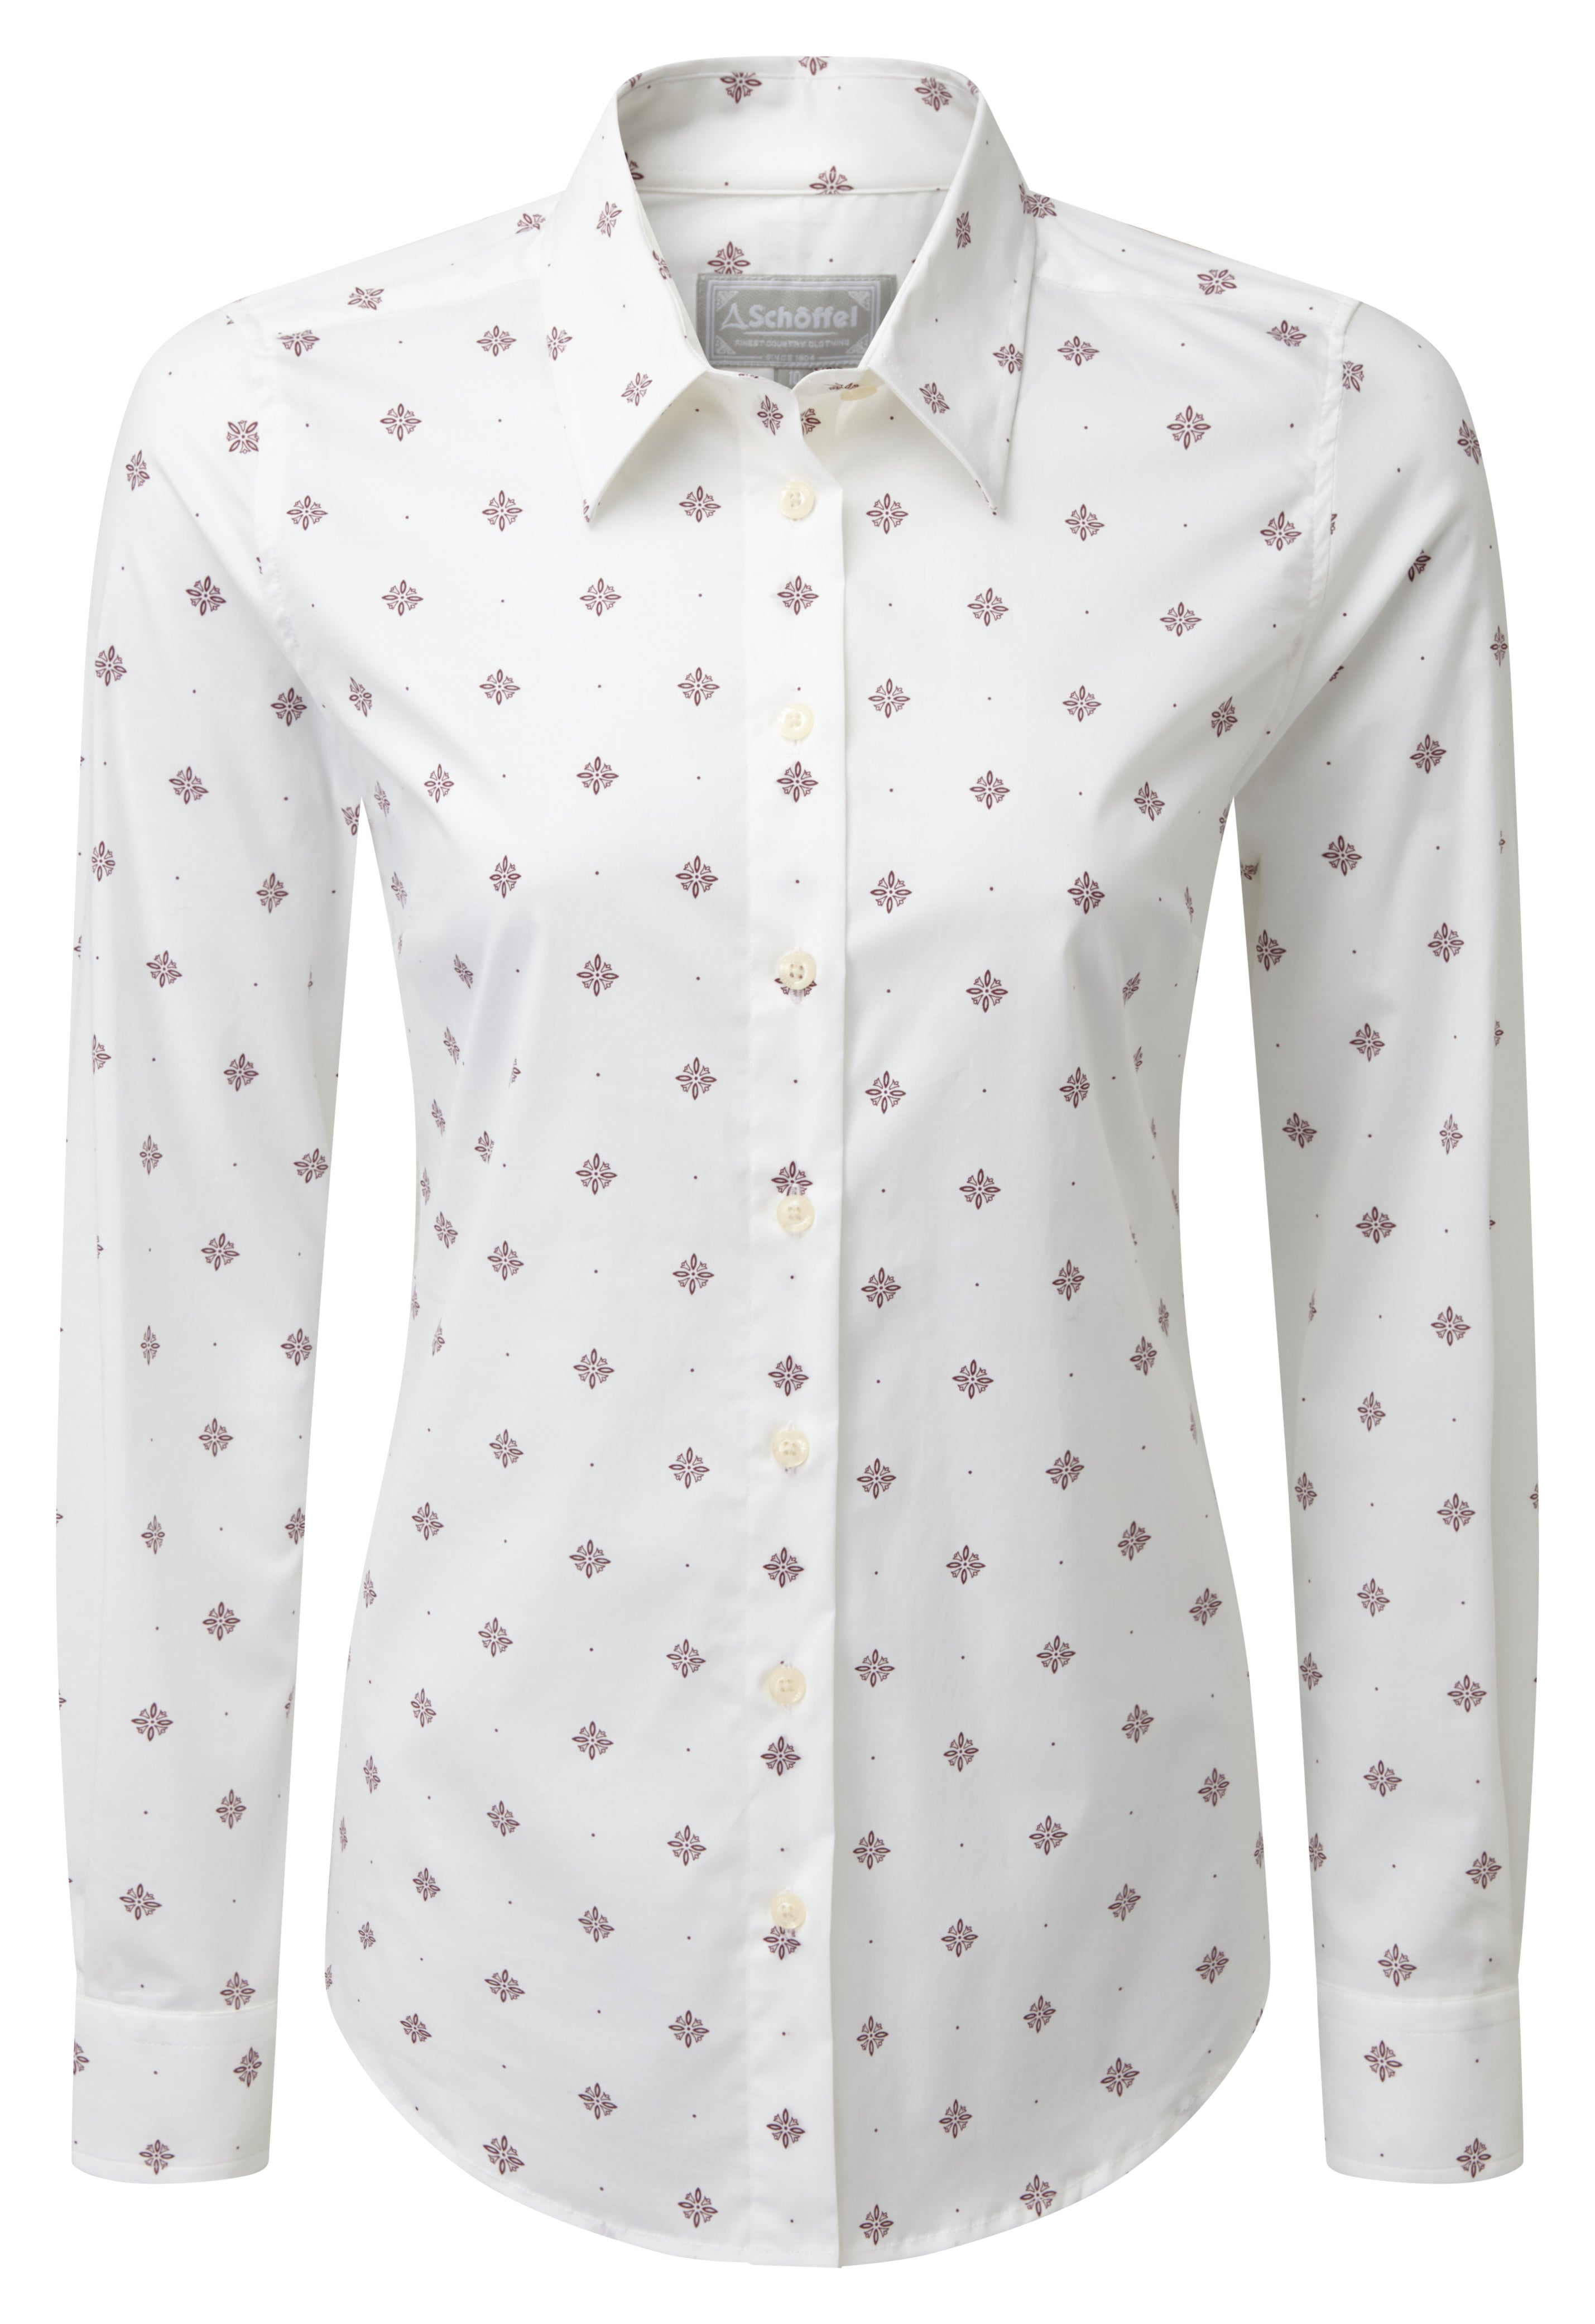 Schoffel Norfolk Shirt for Ladies in Fig Bluebell